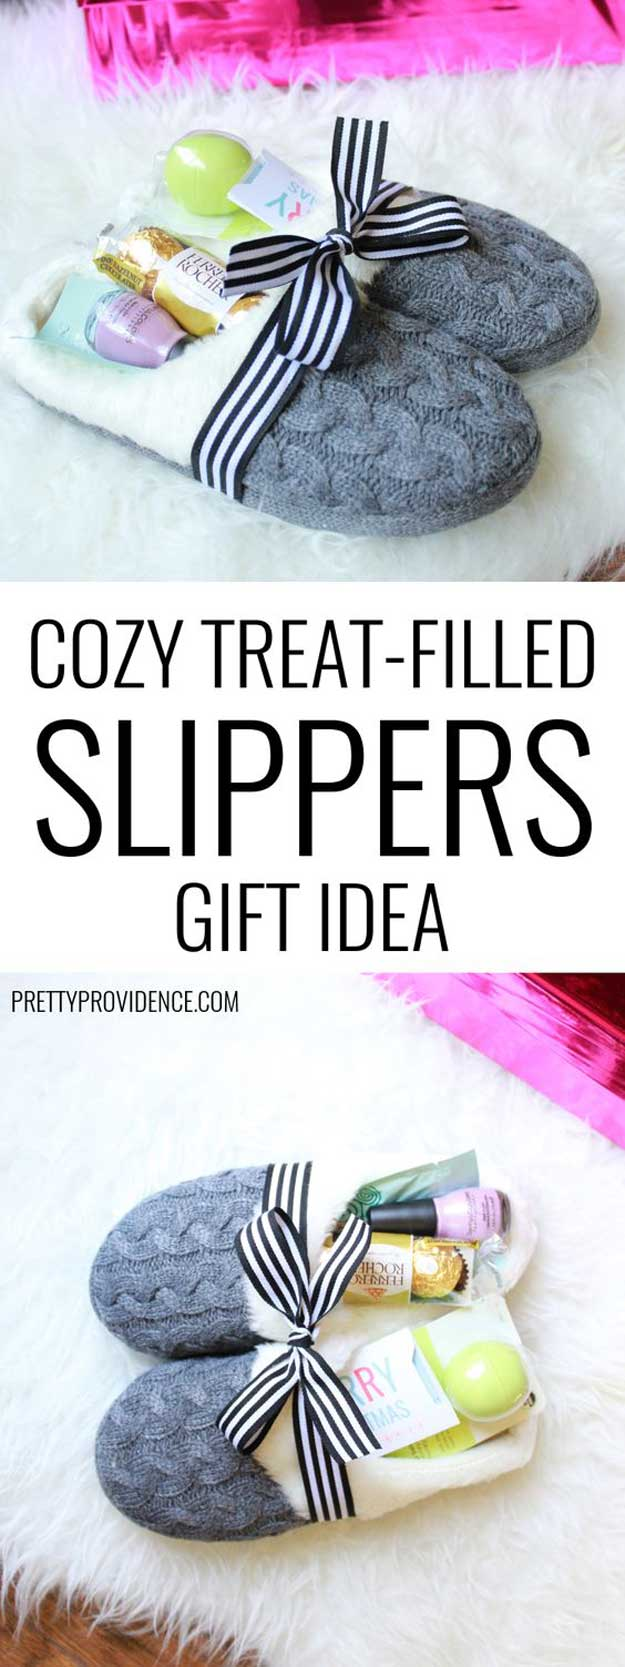 Cute gifts to make for her diy ready Good ideas for christmas gifts for your mom